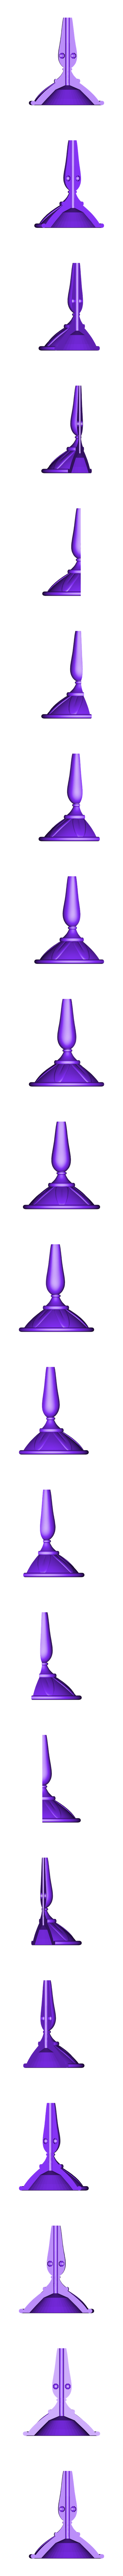 Lumiere_Front_Down(Fixed).stl Download free STL file Lumière (Beauty and the beast) • 3D printing design, Gunnarf1986